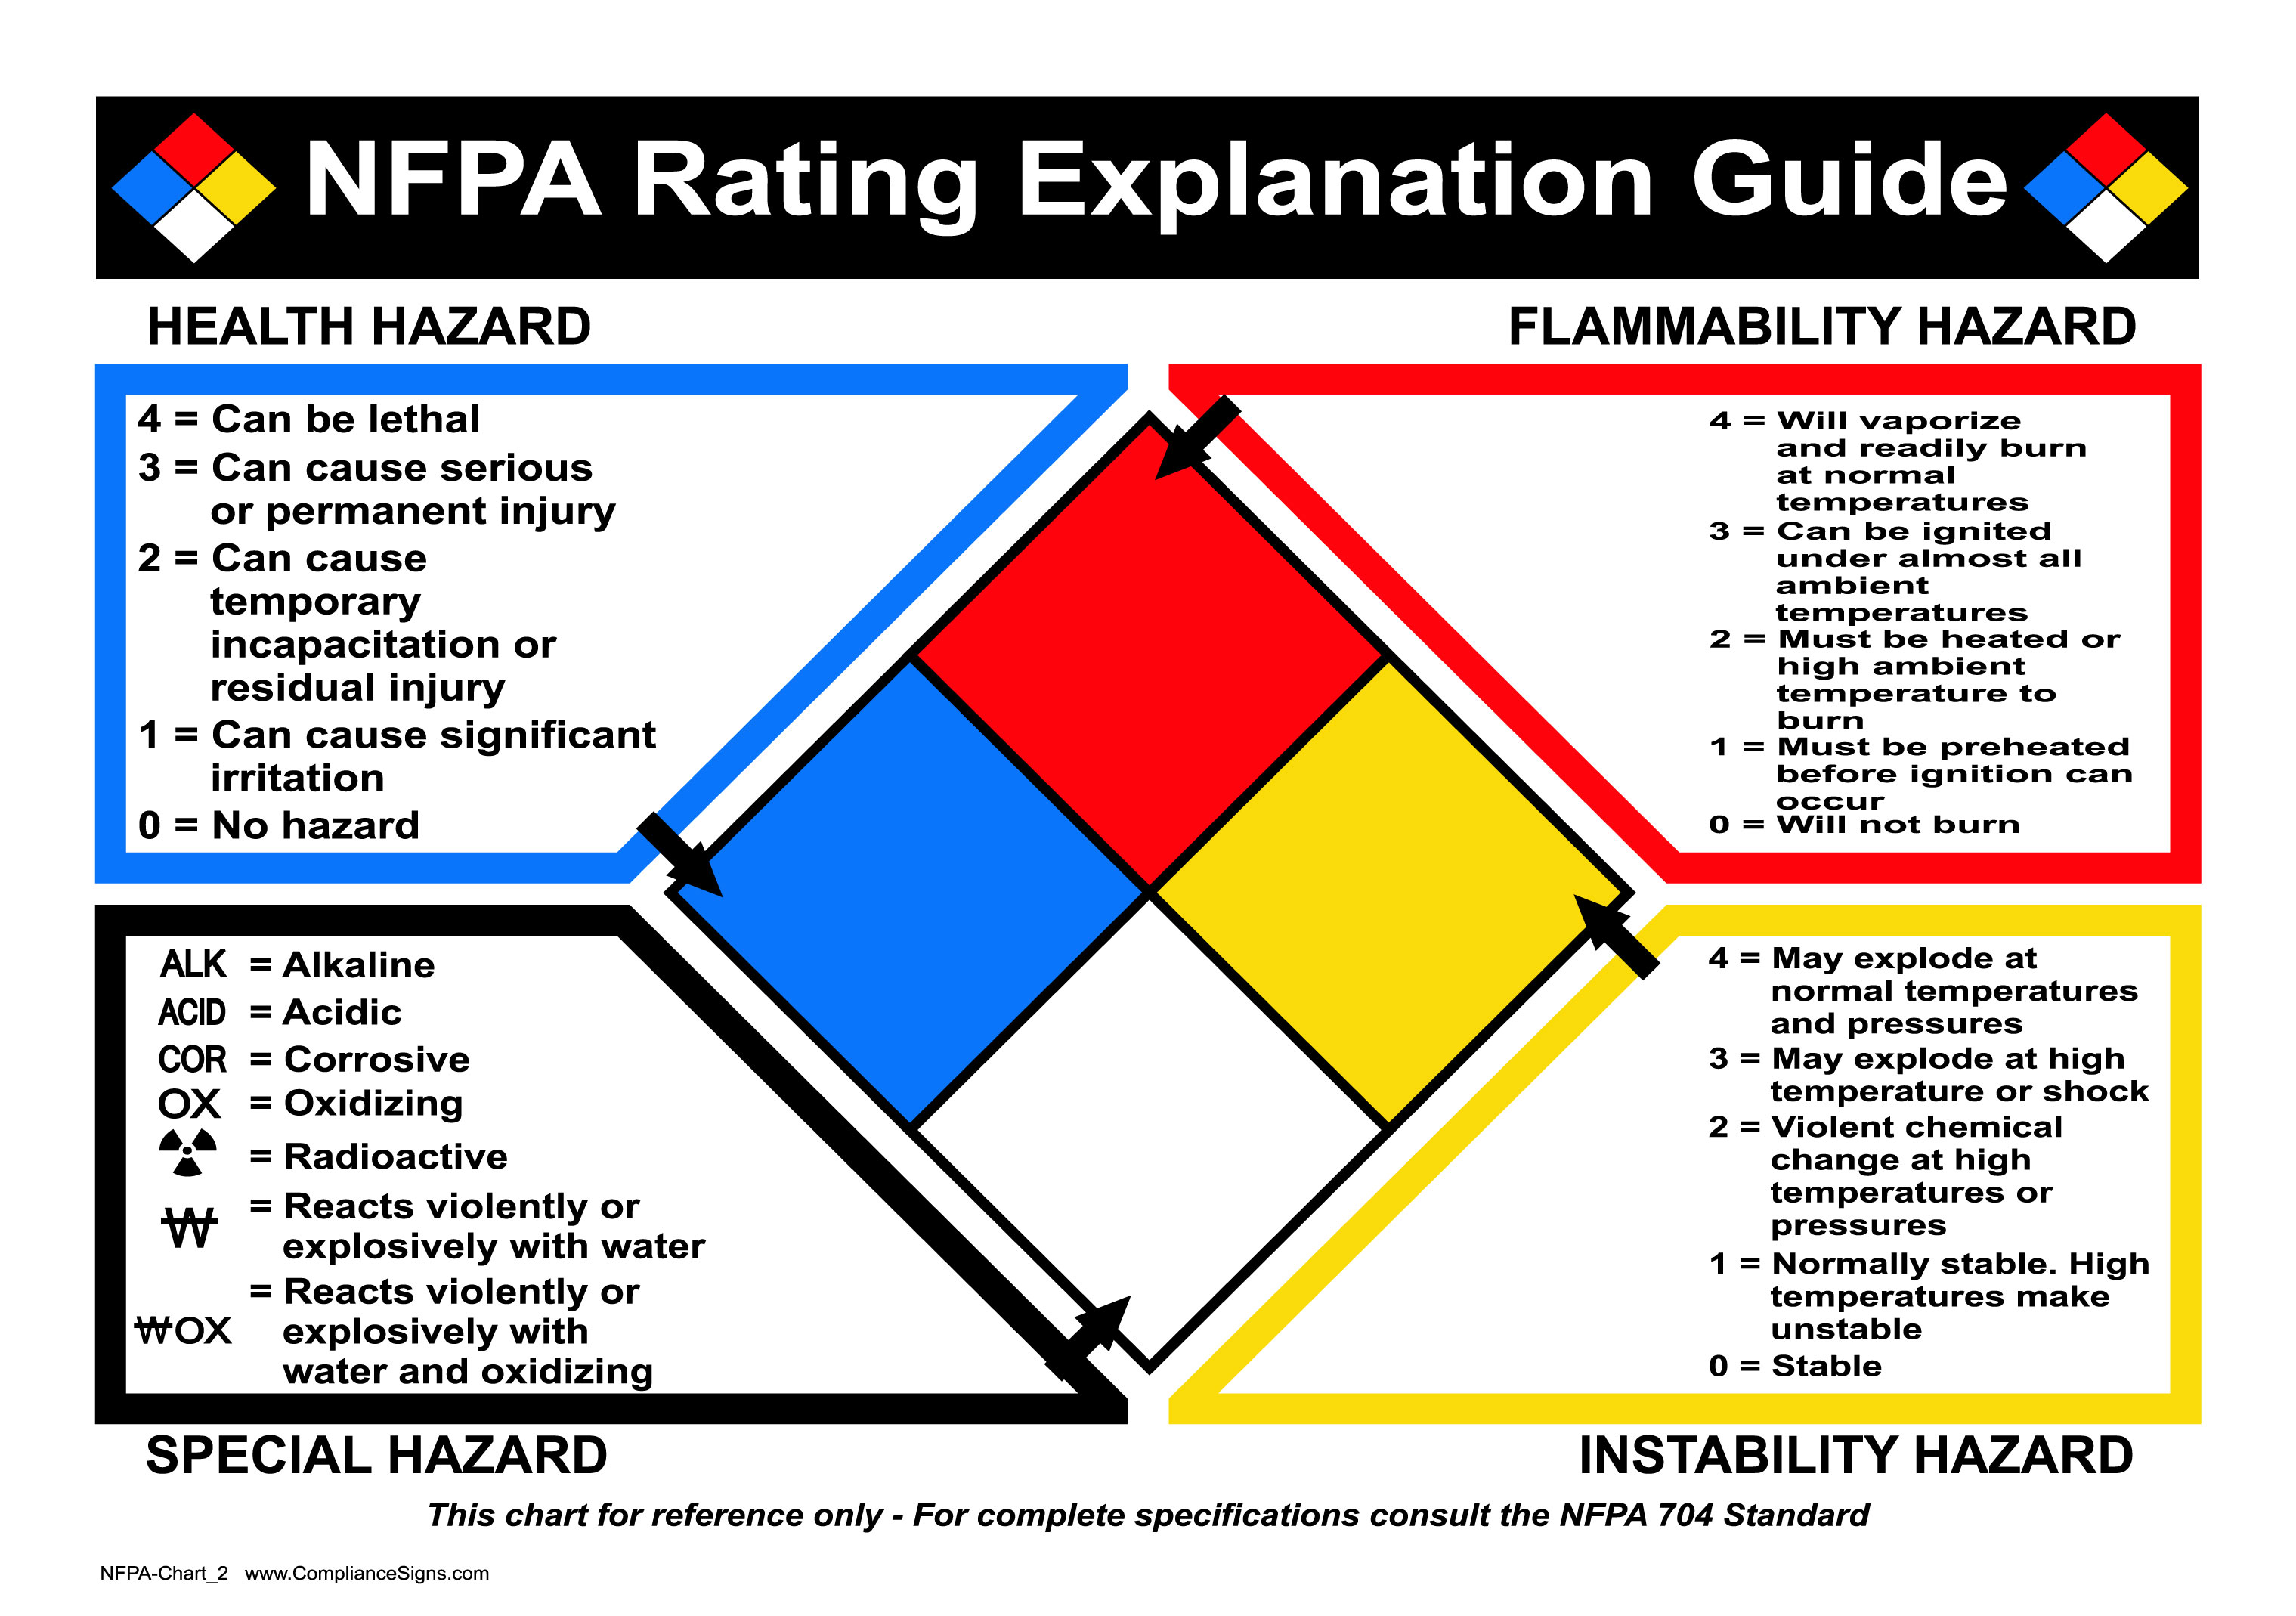 system materials fire association diamond nfpa identification hazardous labe protection template national dangerous kiss label goods